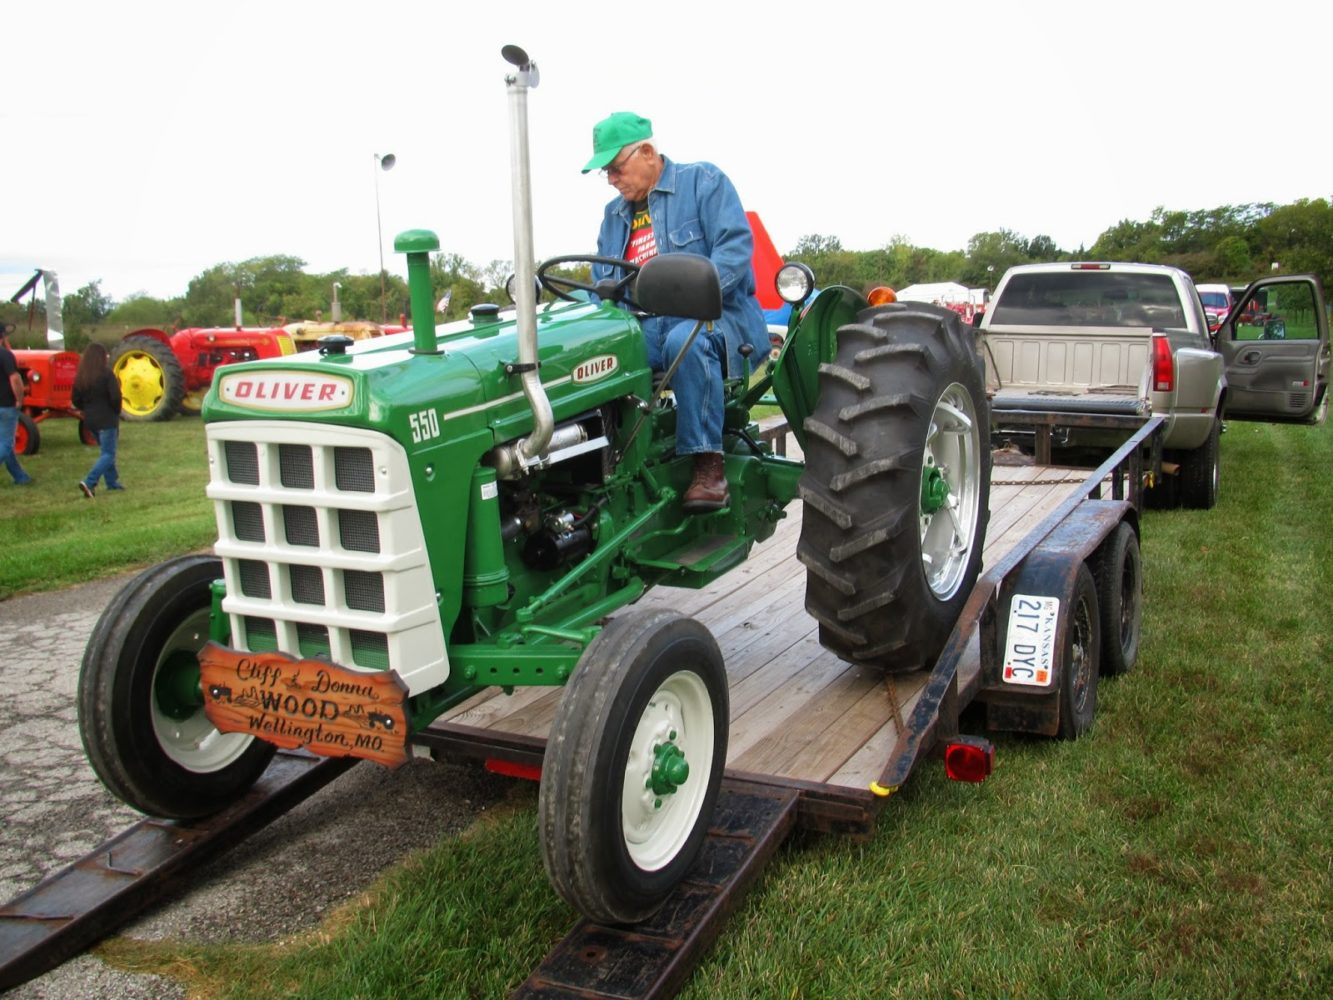 Harvest Celebration And Antique Tractor And Equipment Show